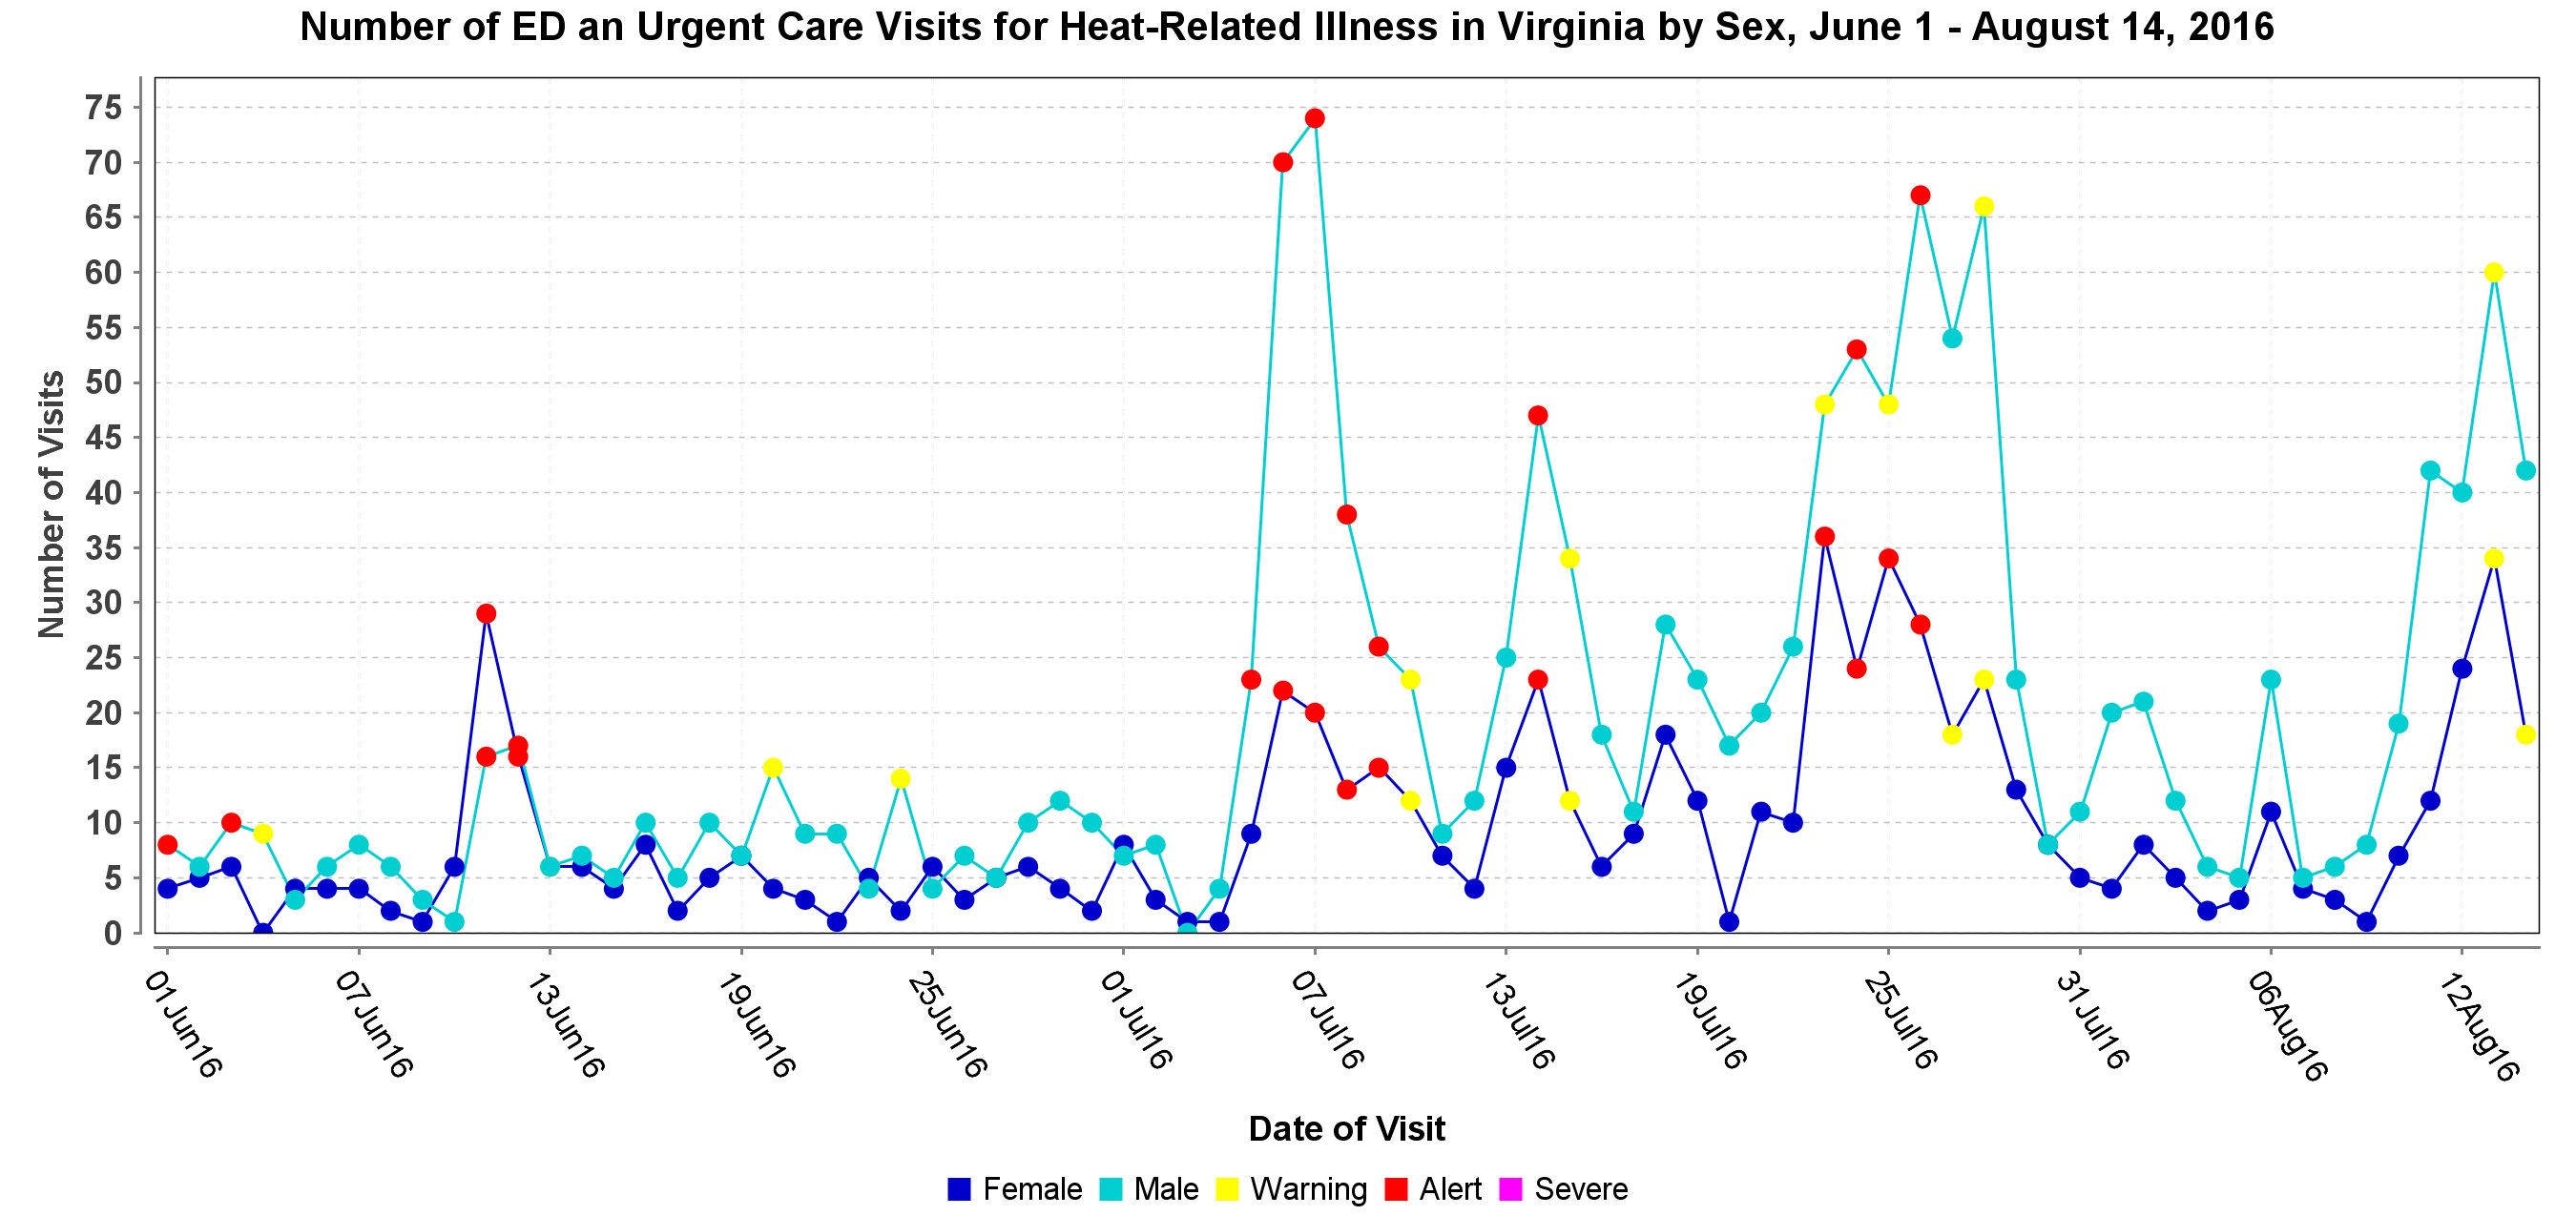 Heat-Related Illness in Virginia by Sex